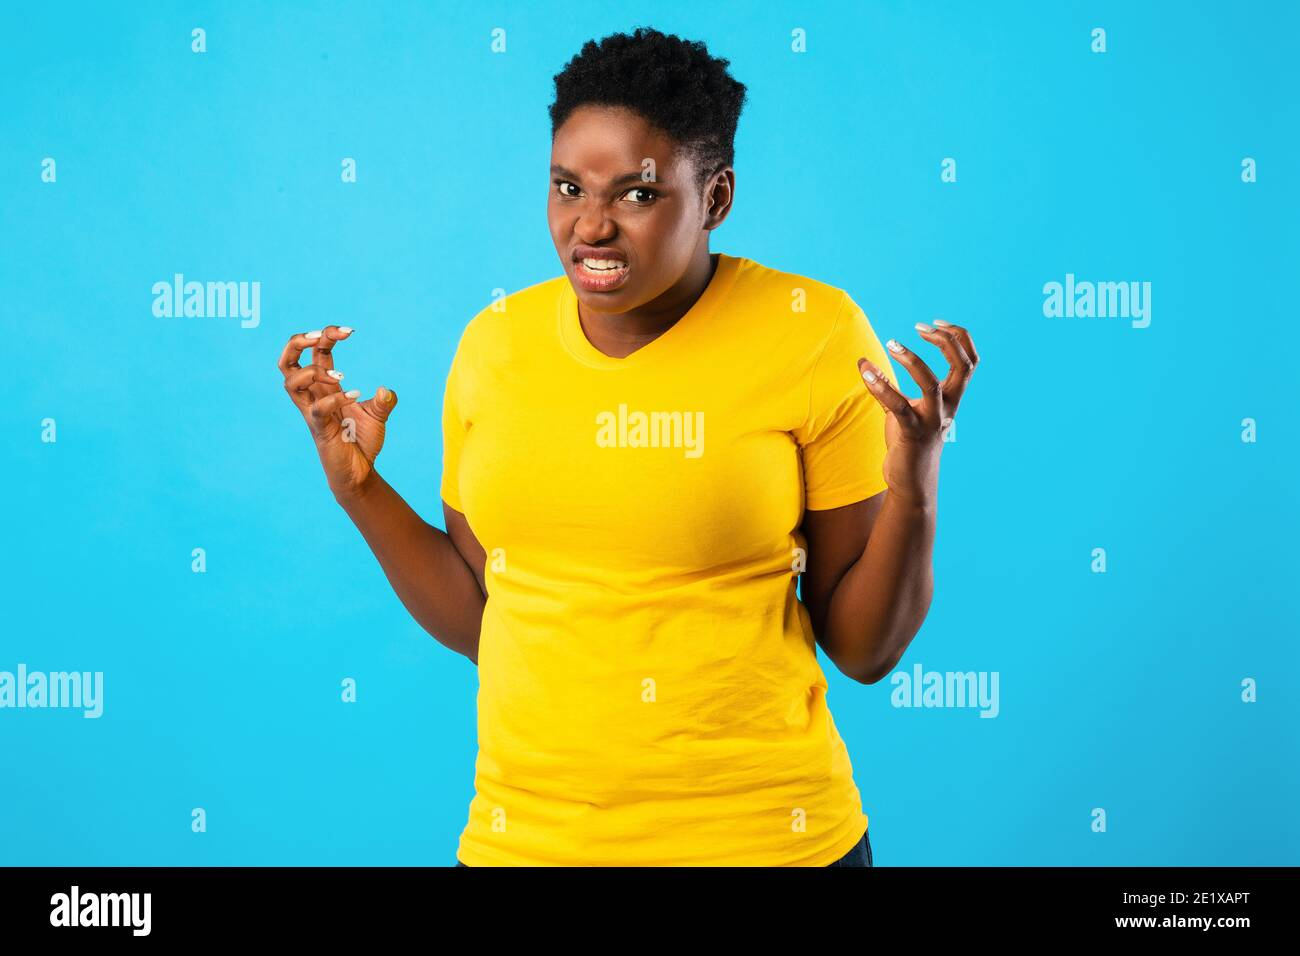 Mad African Woman Freaking Out Looking Angrily Posing, Blue Background Stock Photo